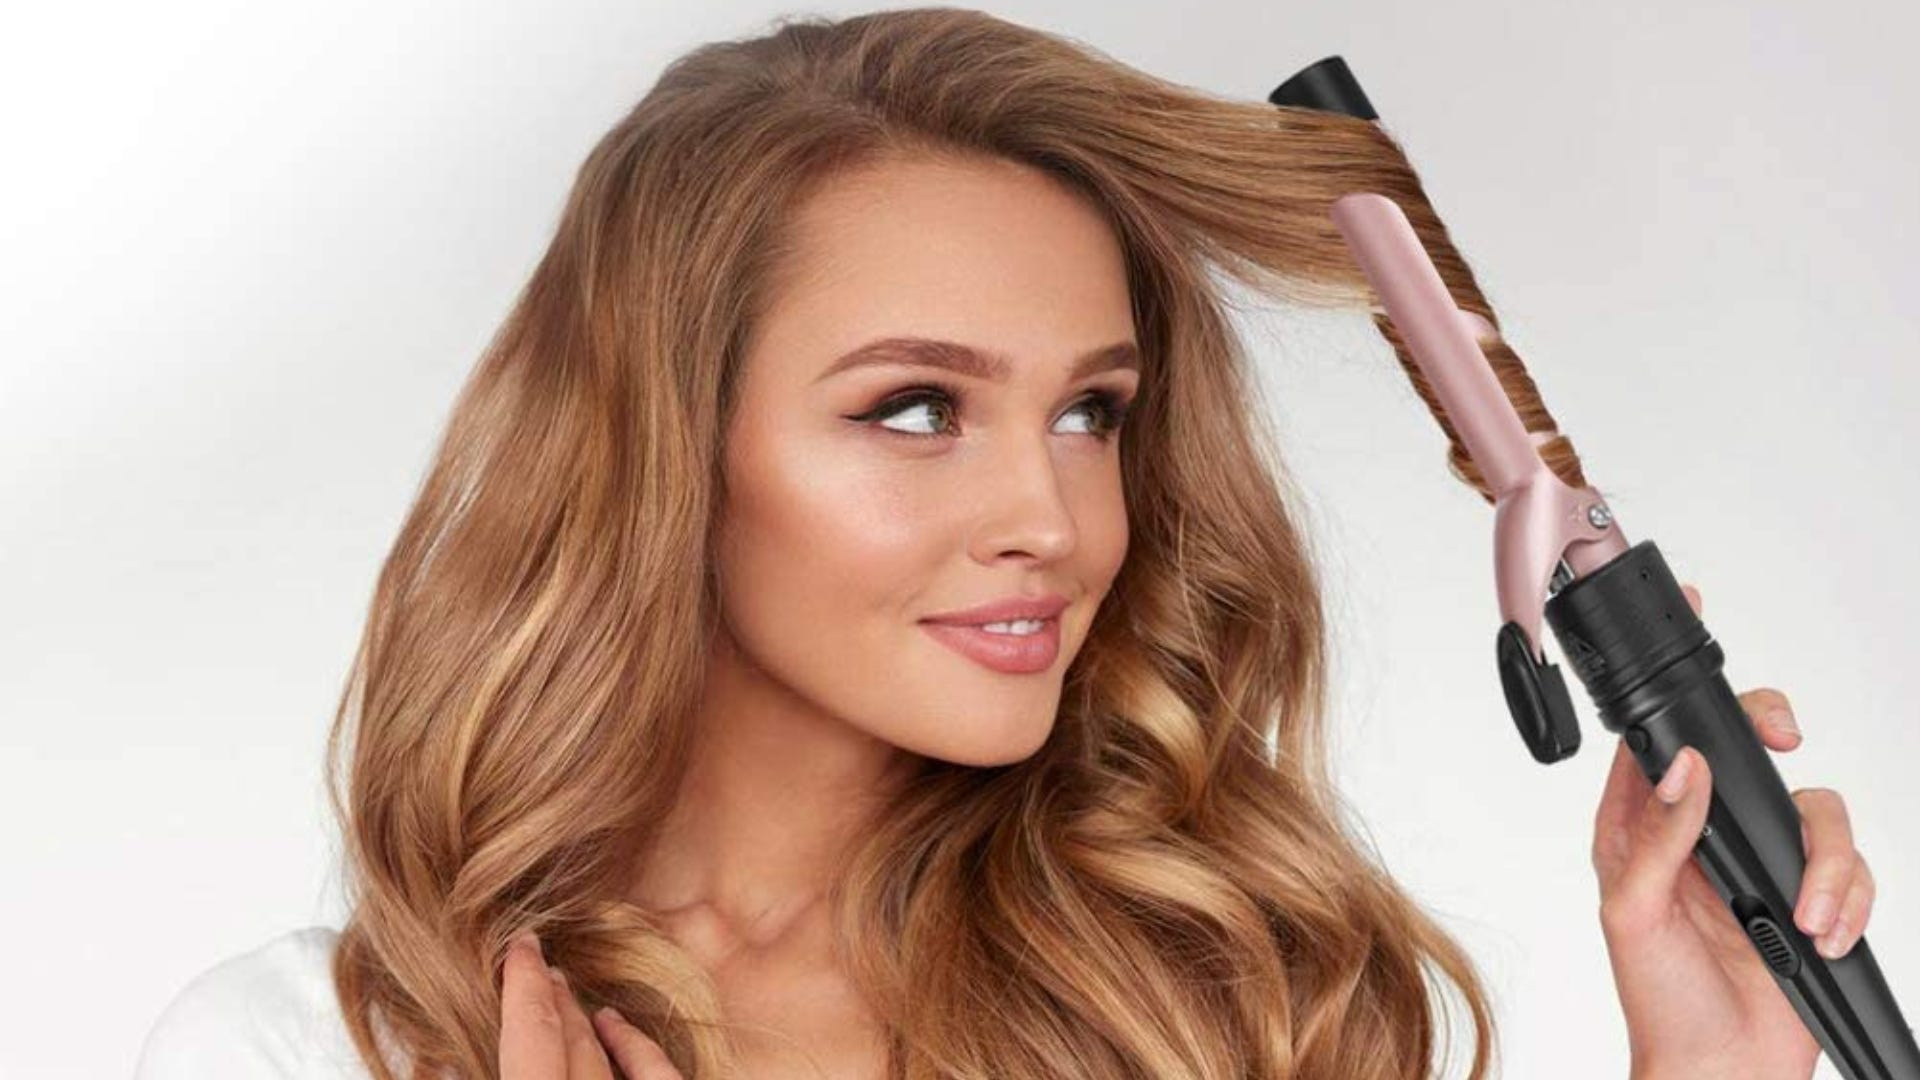 A brunette looks at a pink curling wand as it curls a strand of her hair..